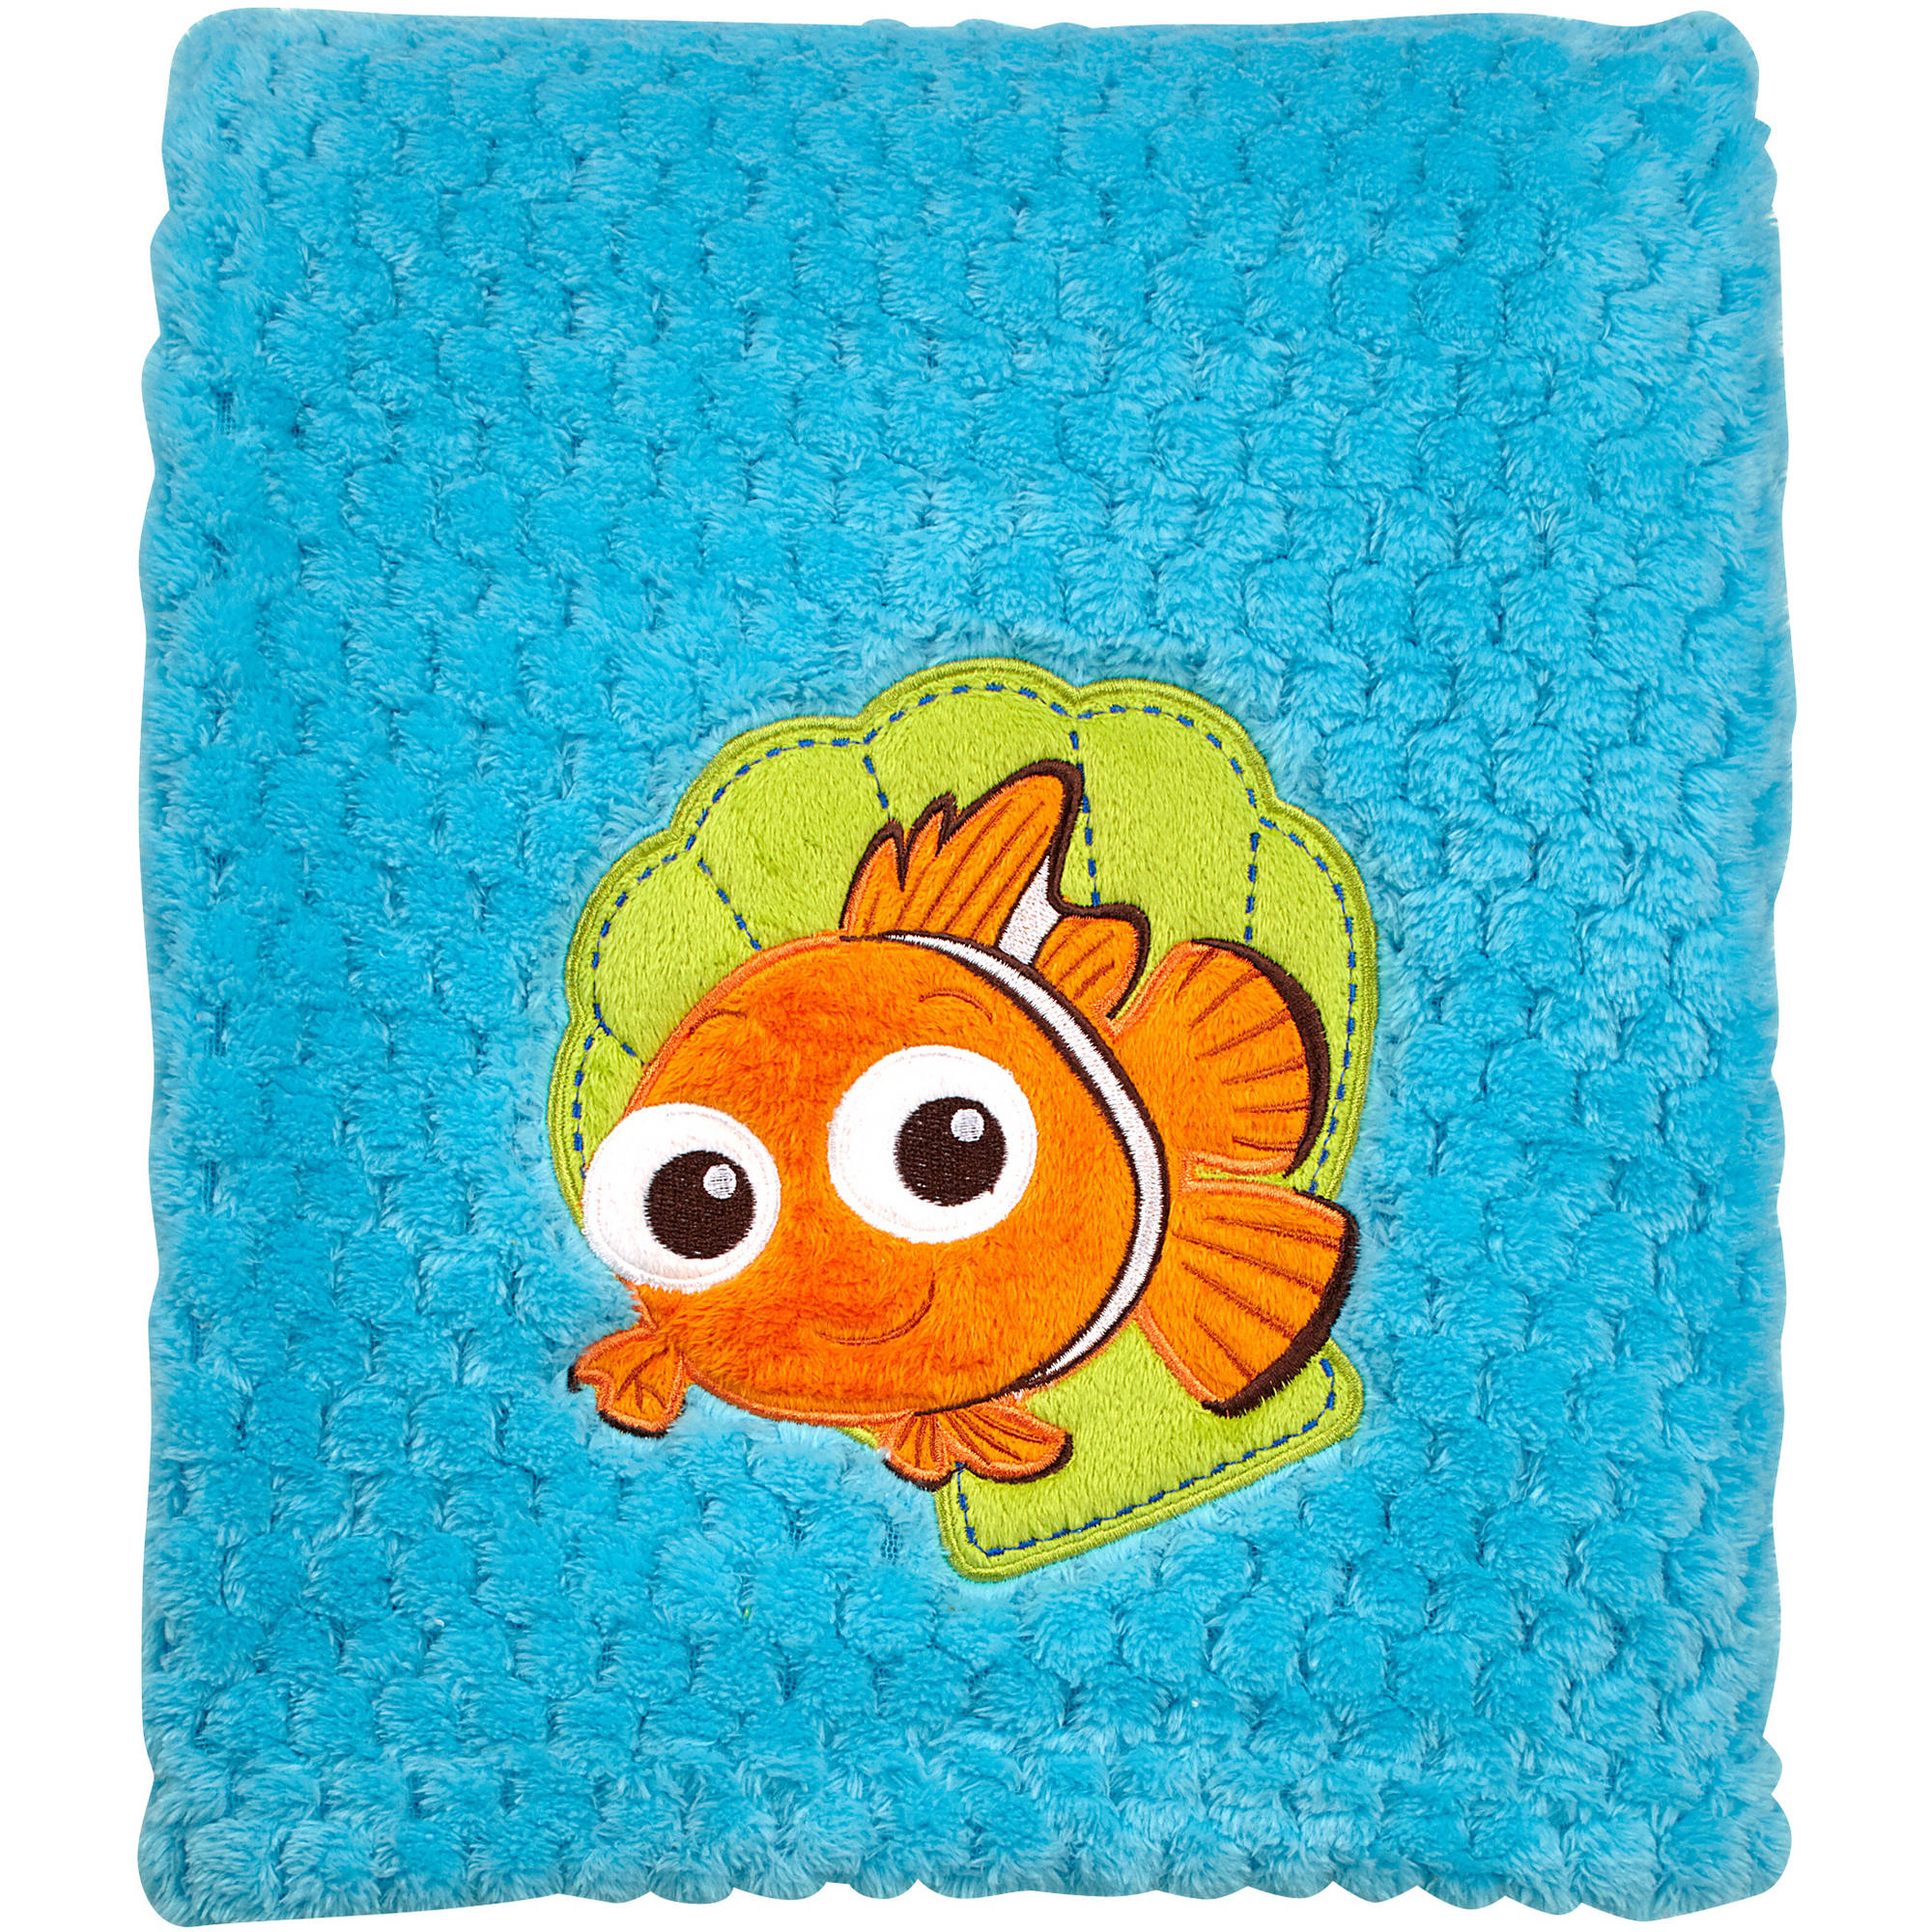 Disney Finding Nemo Plush Popcorn Applique Blanket